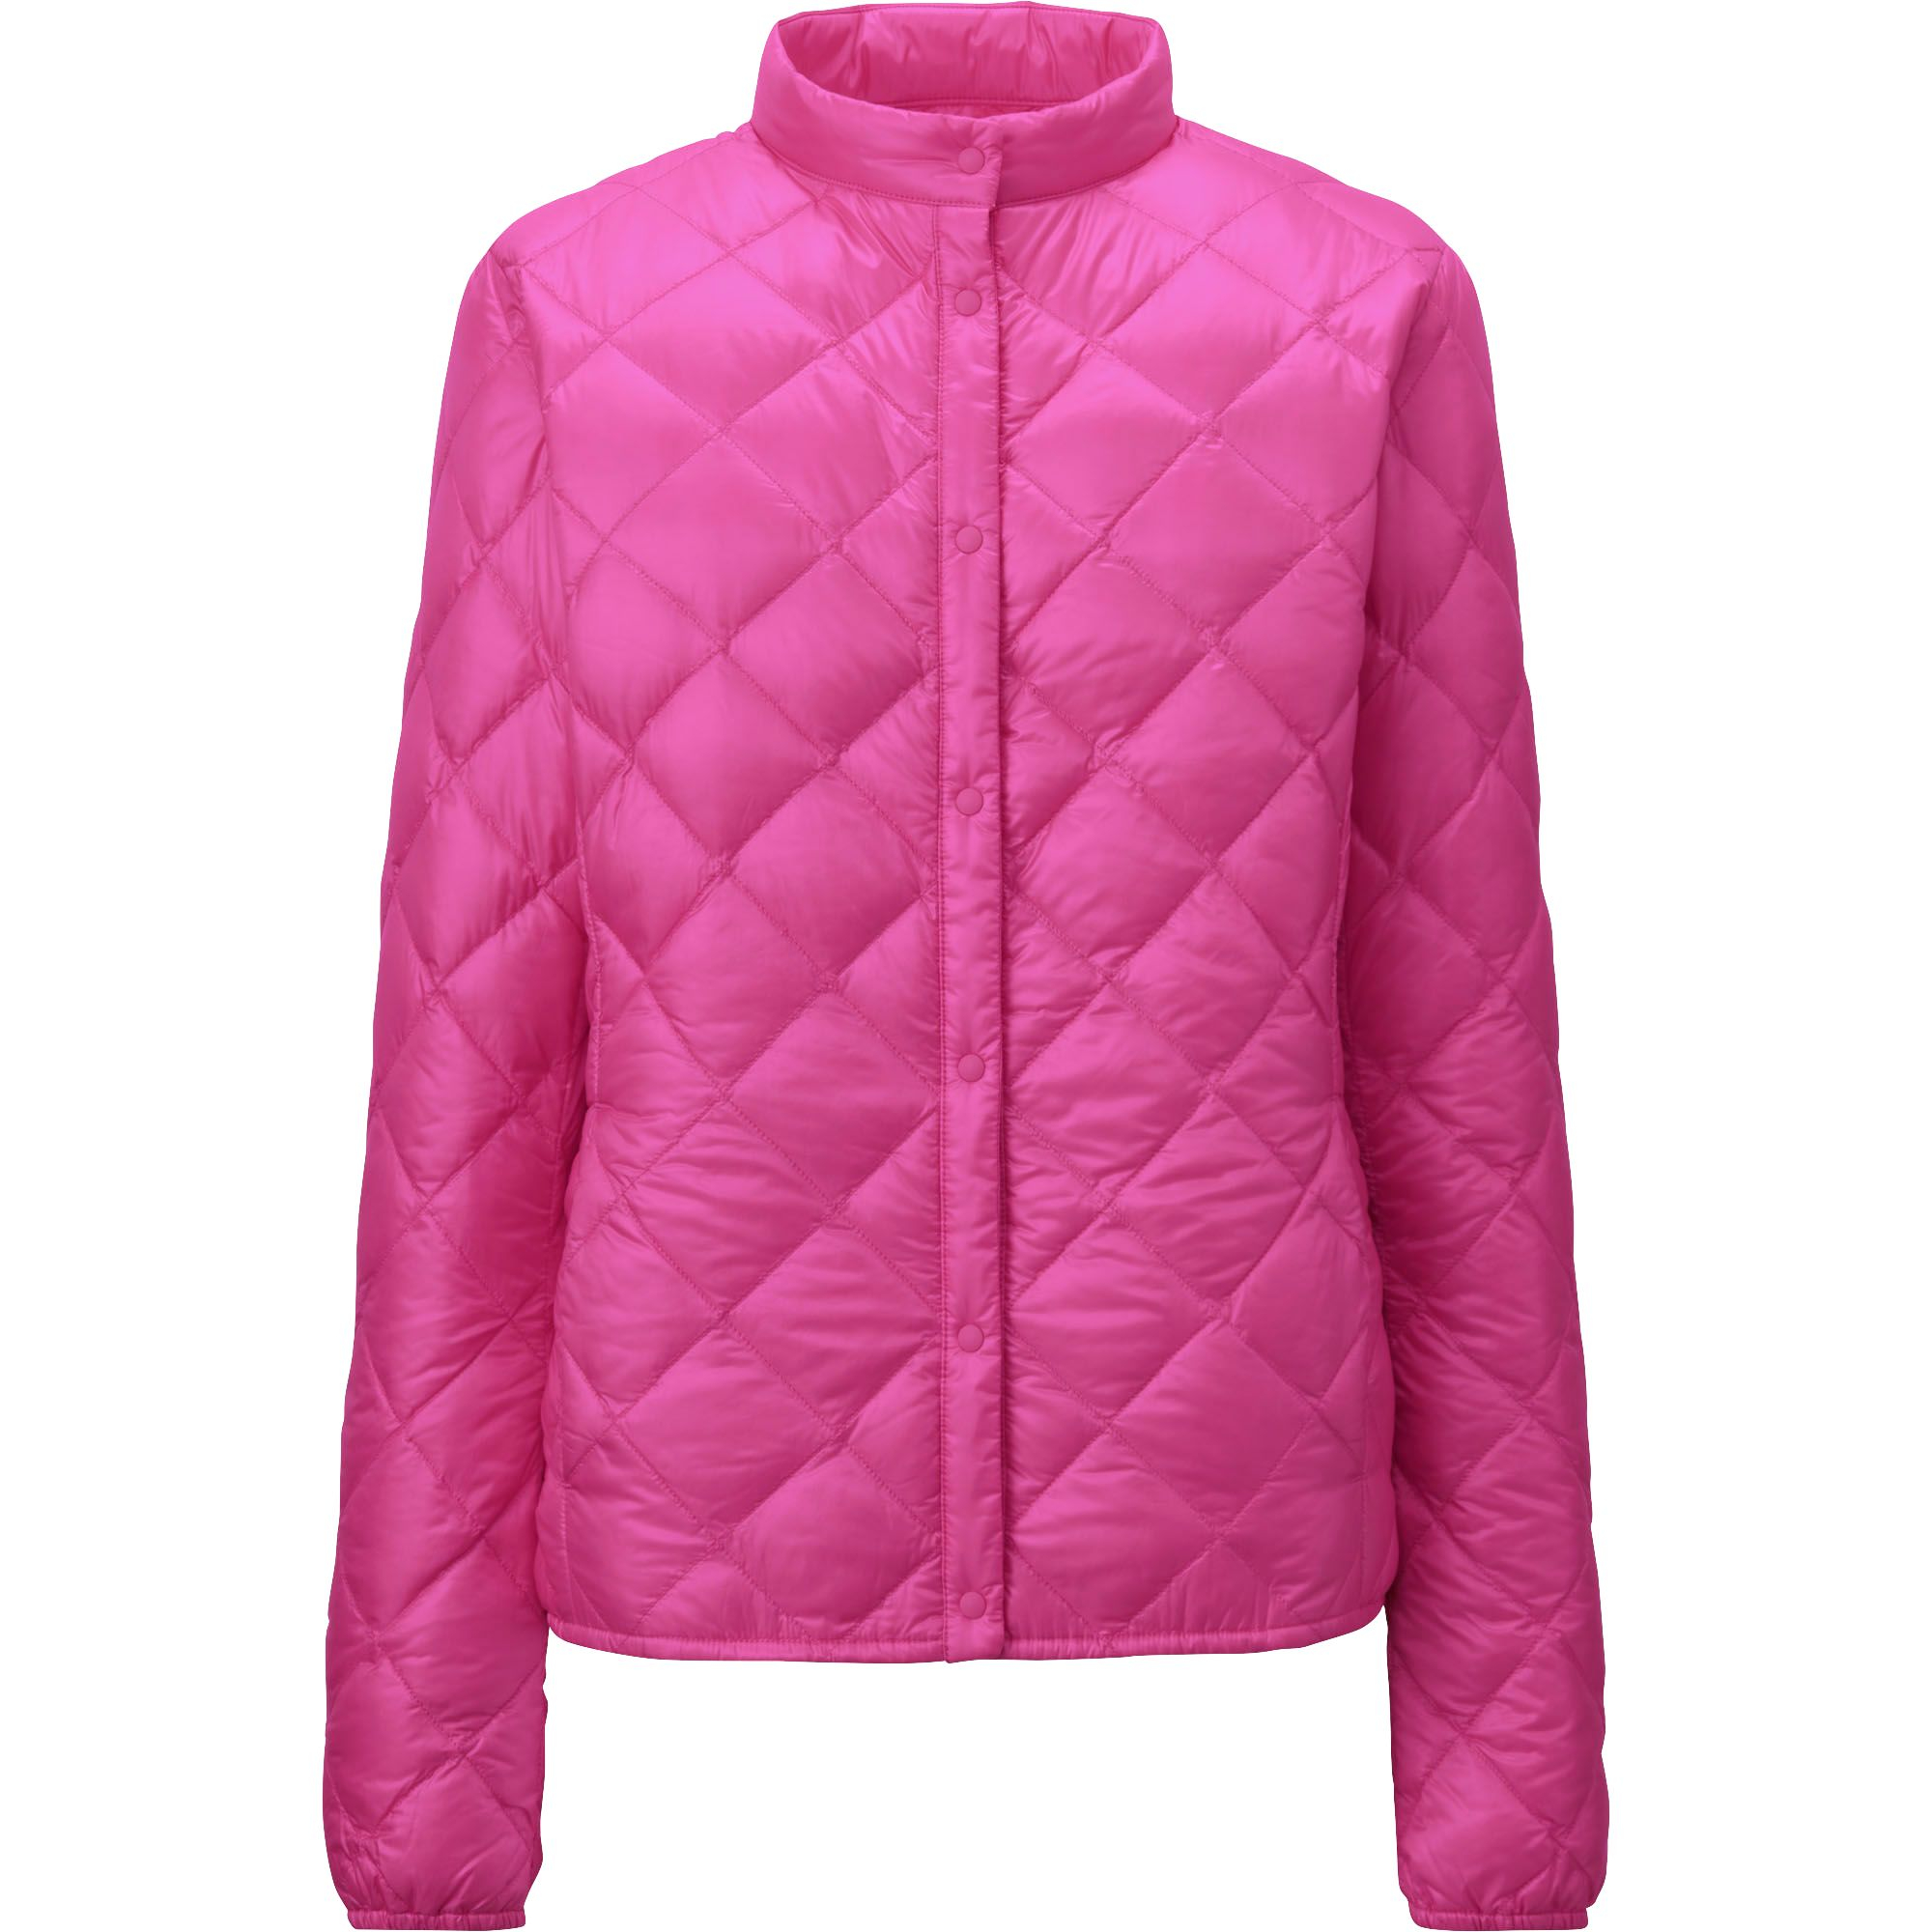 Uniqlo Ultra Light Down Compact Quilted Jacket In Pink